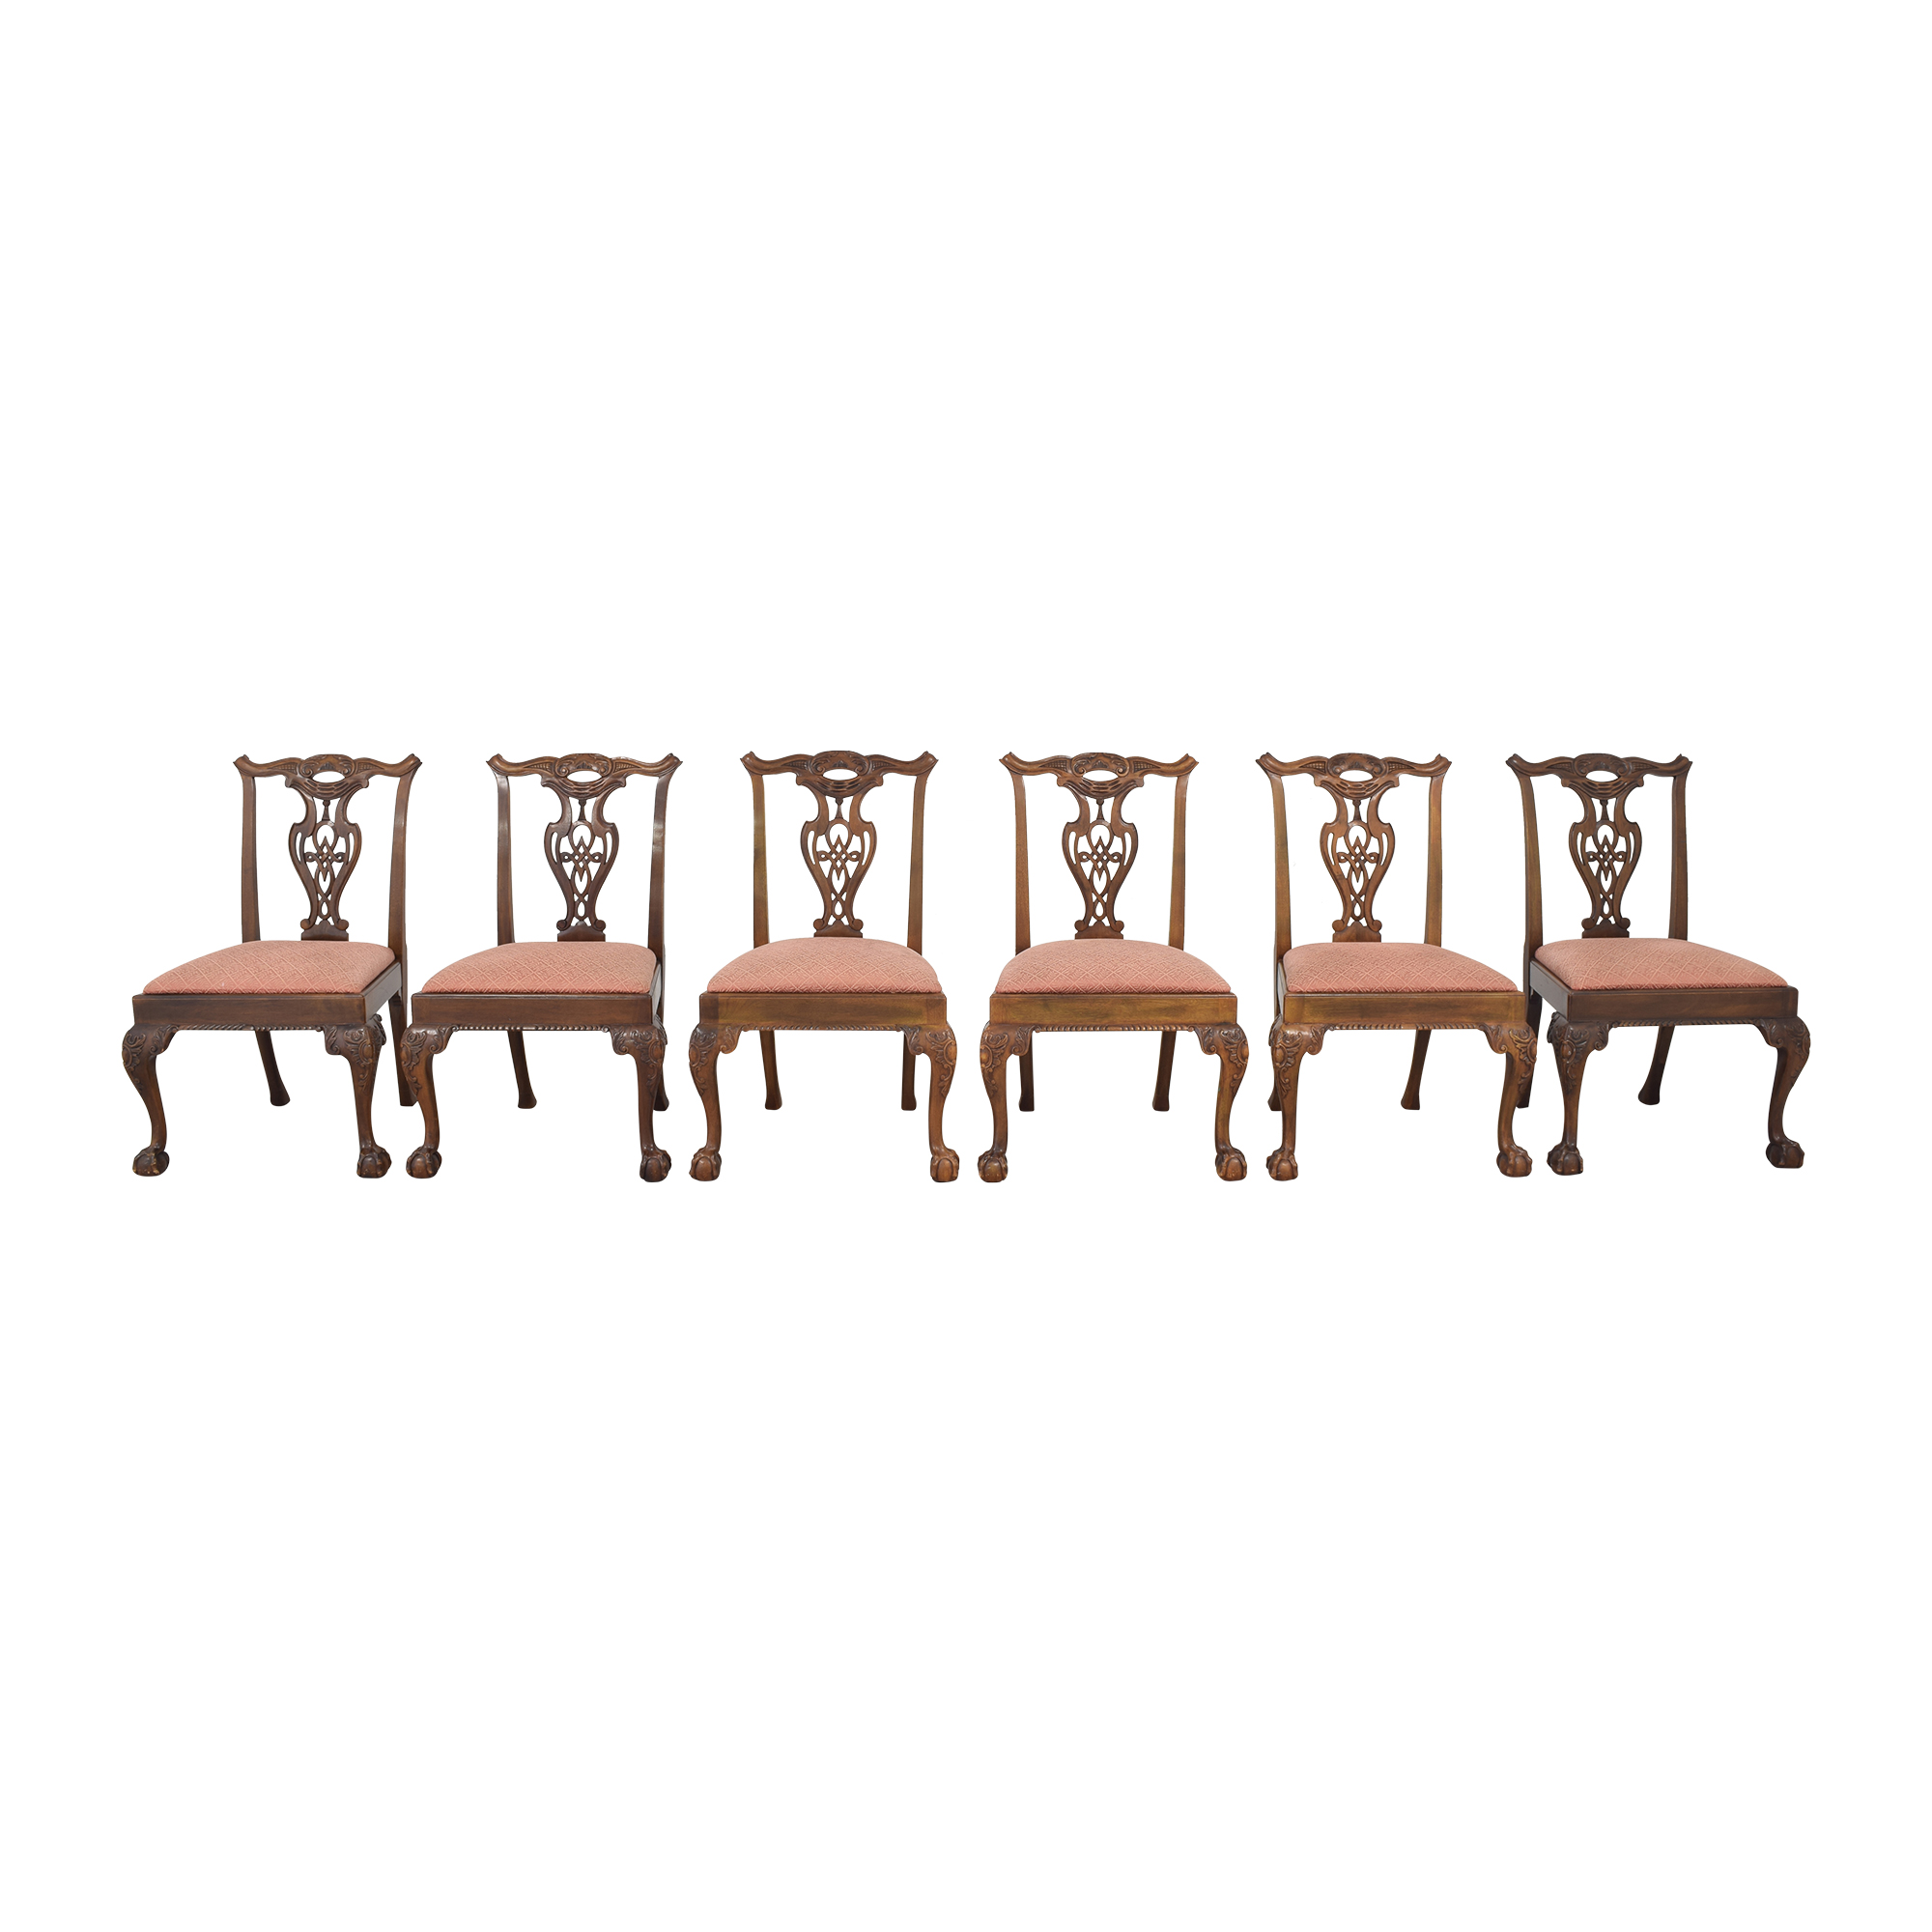 Henredon Furniture Henredon Heirloom Dining Chairs nyc